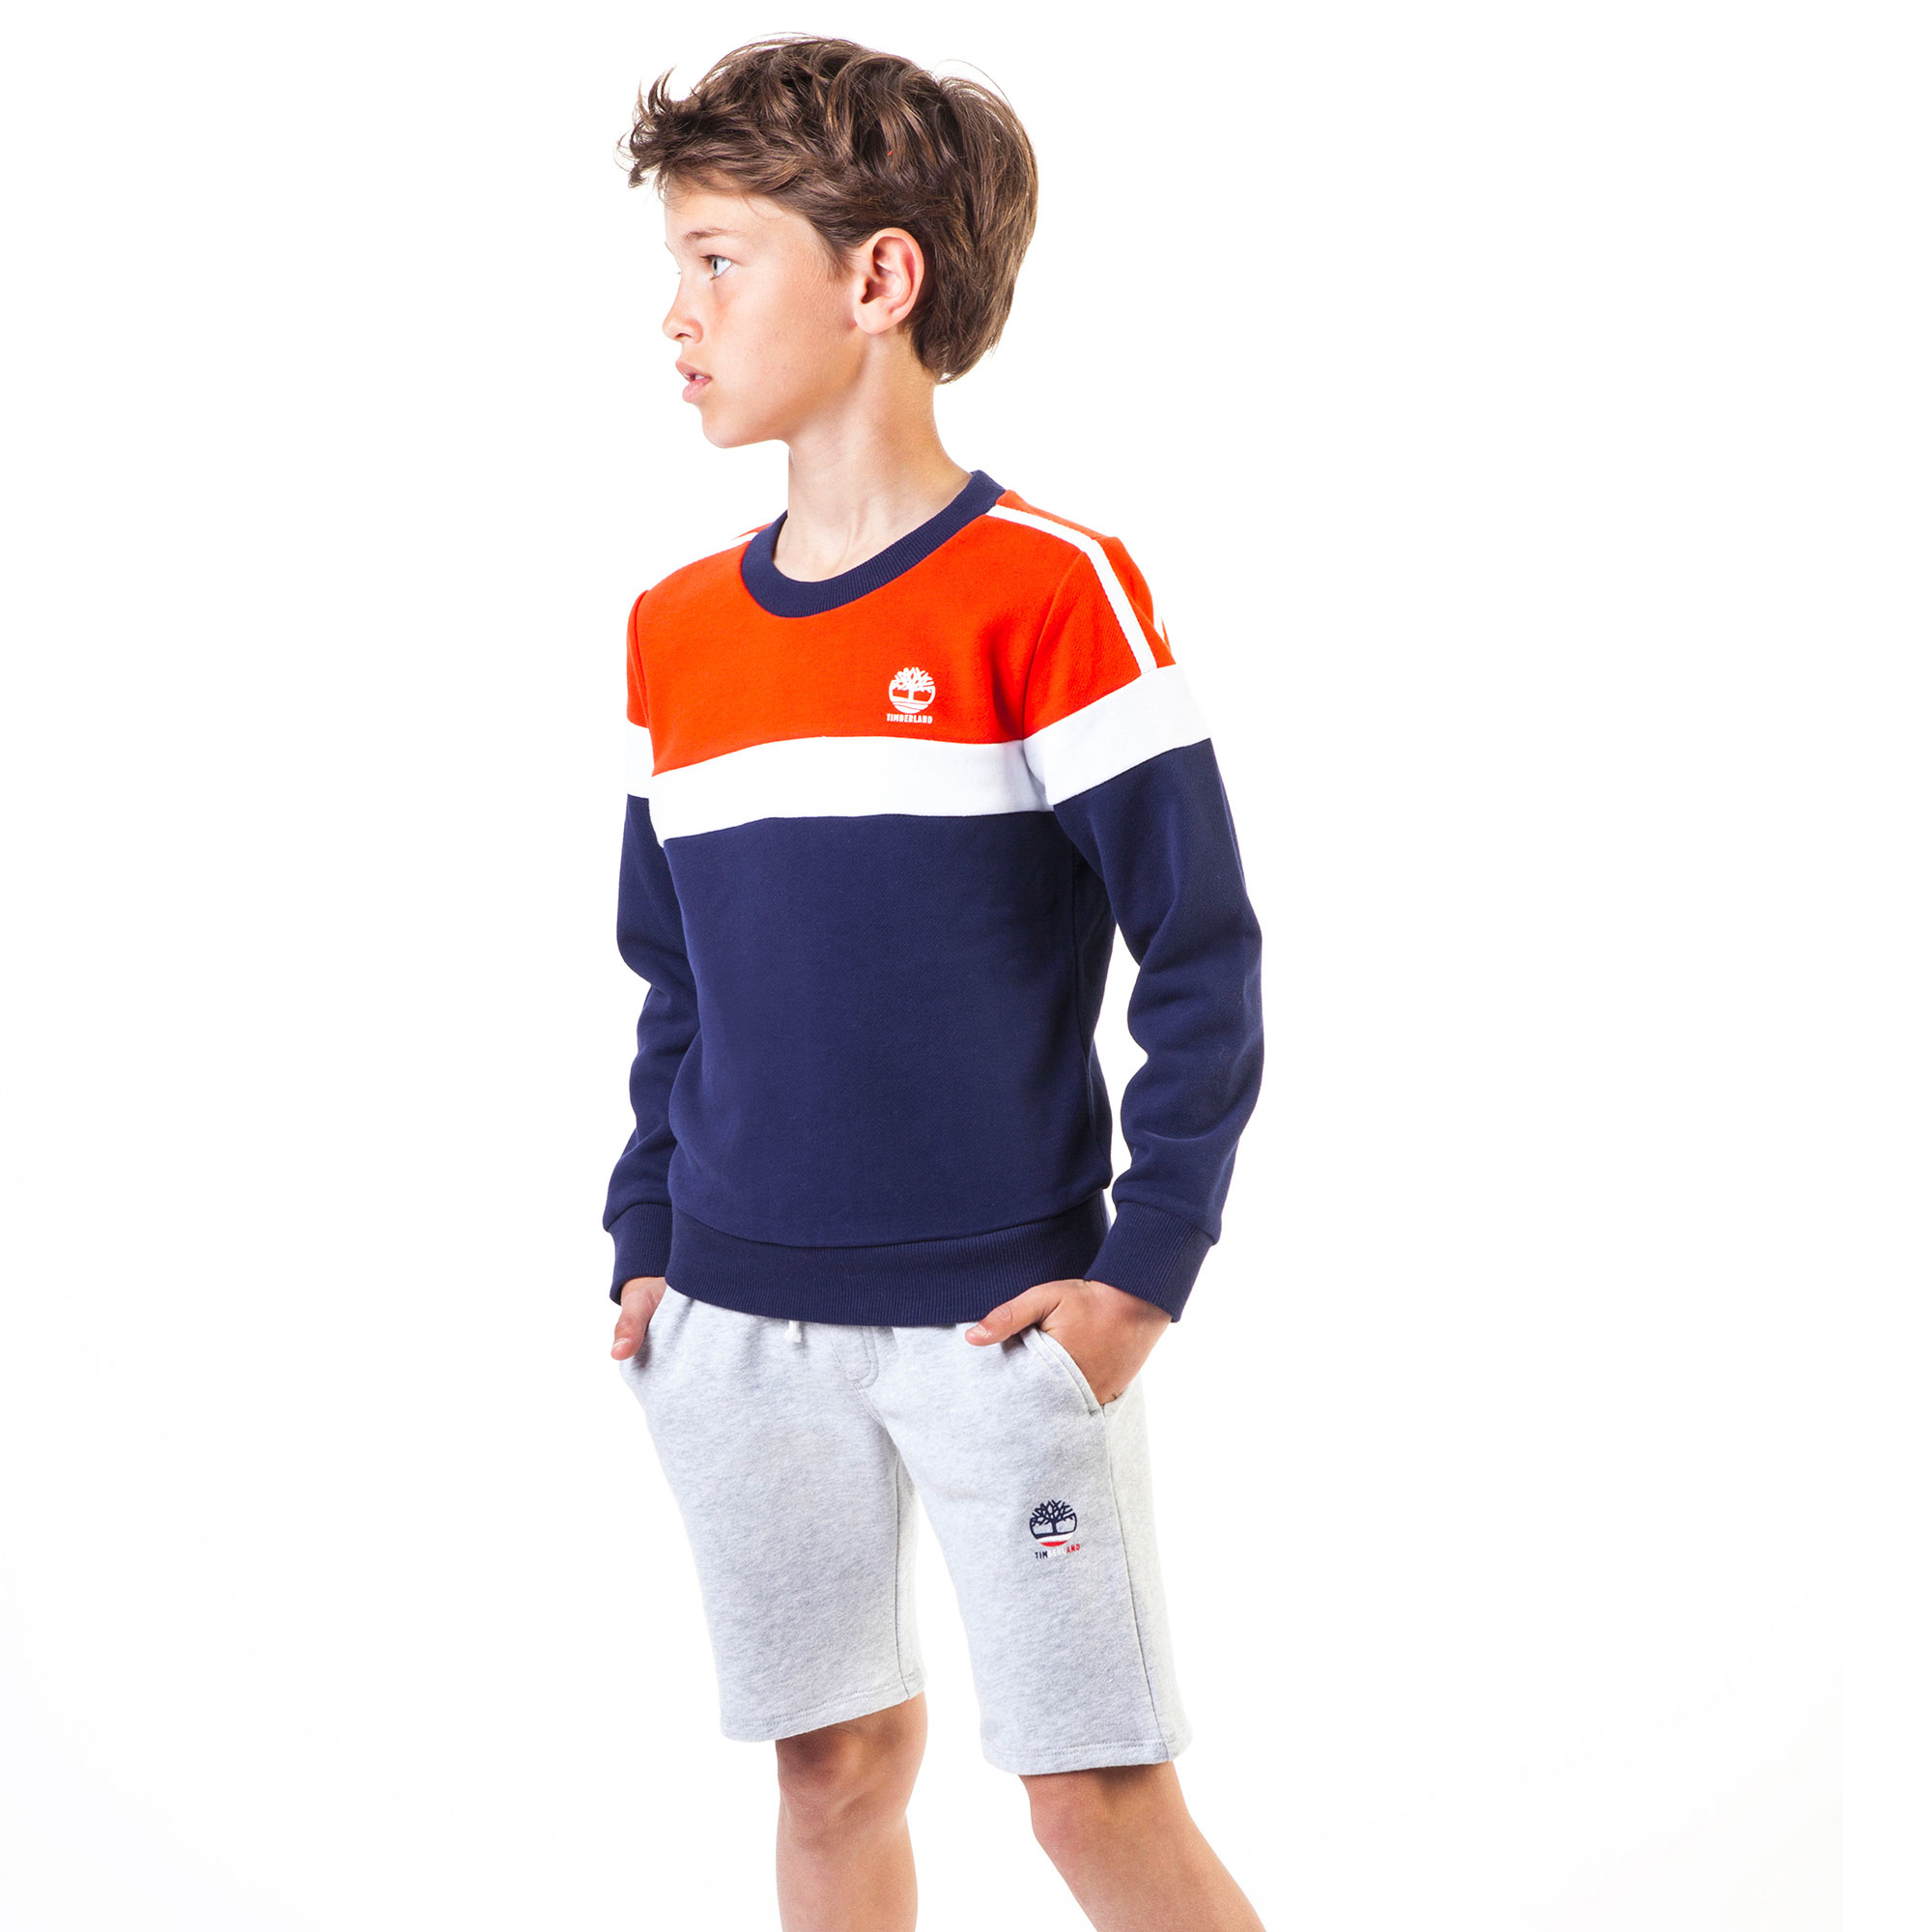 Bermuda shorts with pockets TIMBERLAND for BOY